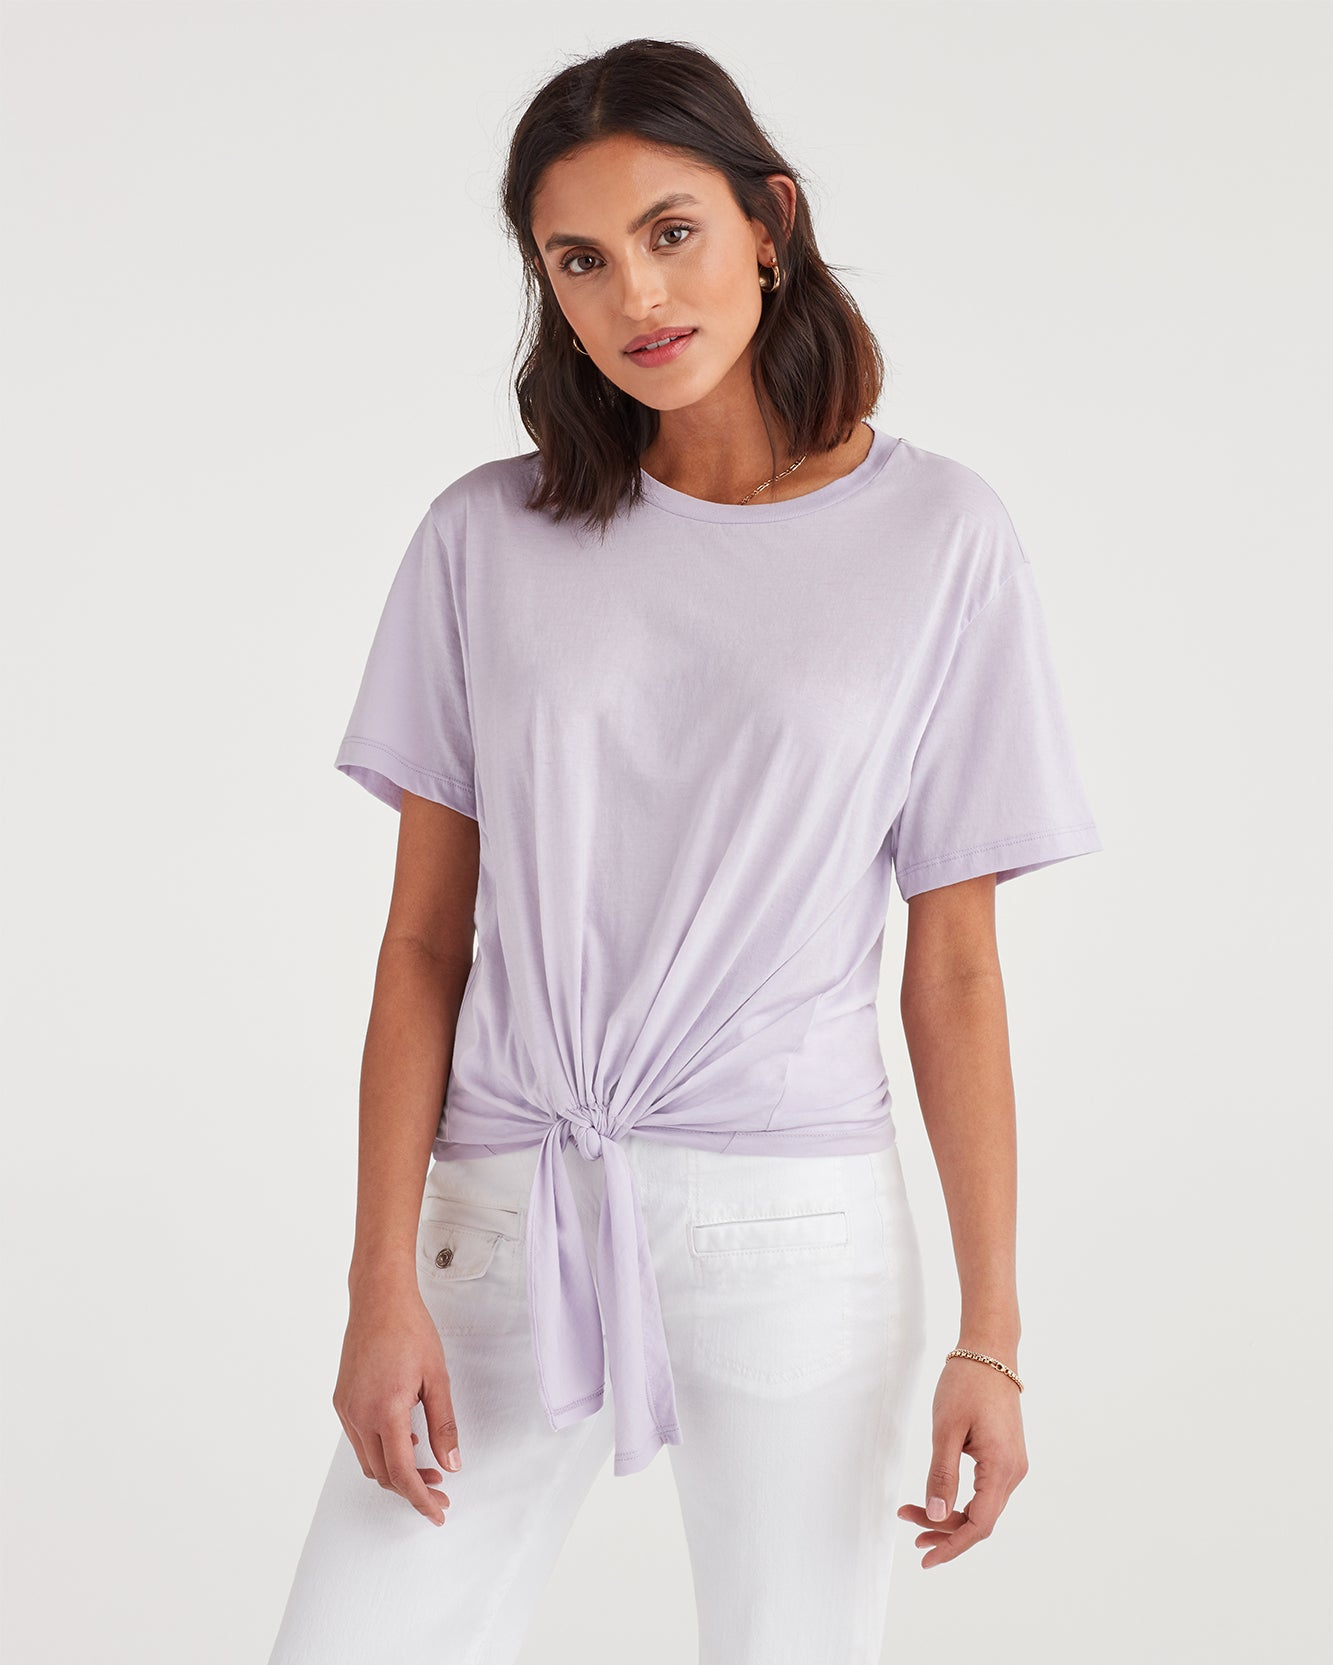 Image of Tunnel Front Tee in Lilac Mist